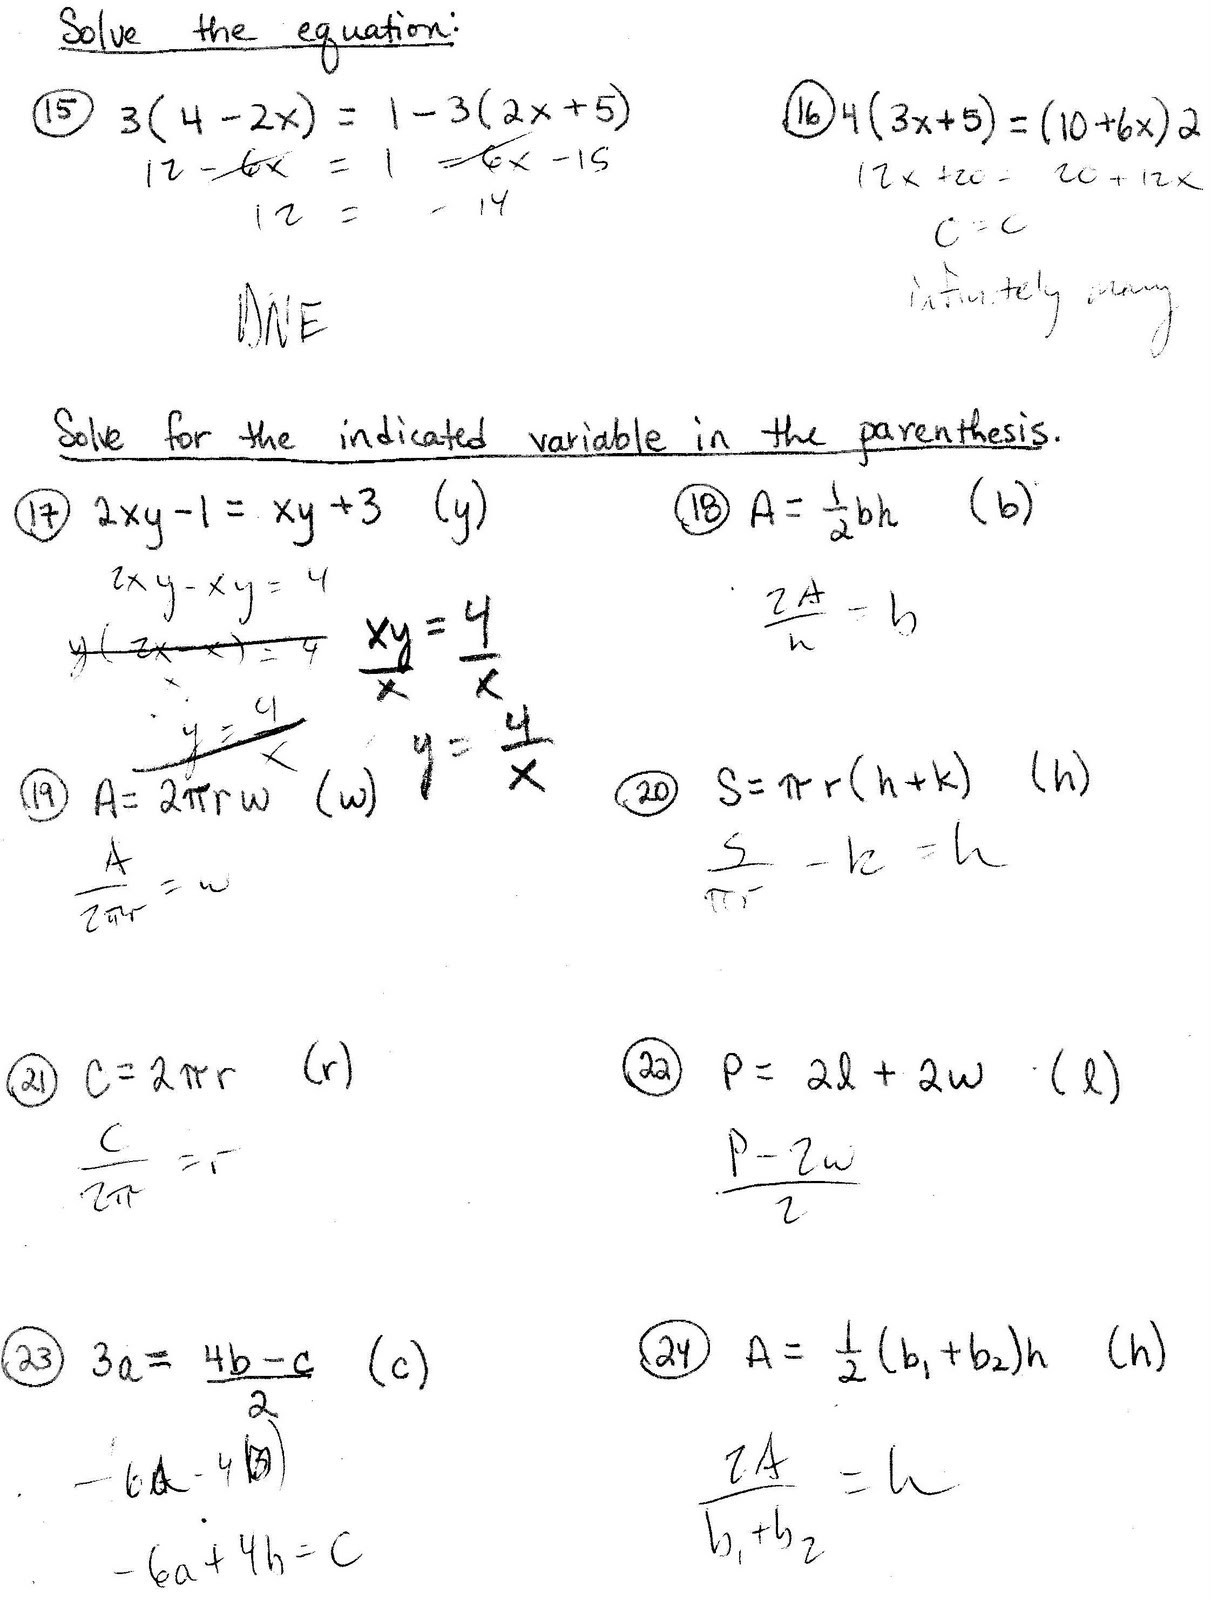 Literal Equations Worksheet Answer Key With Work